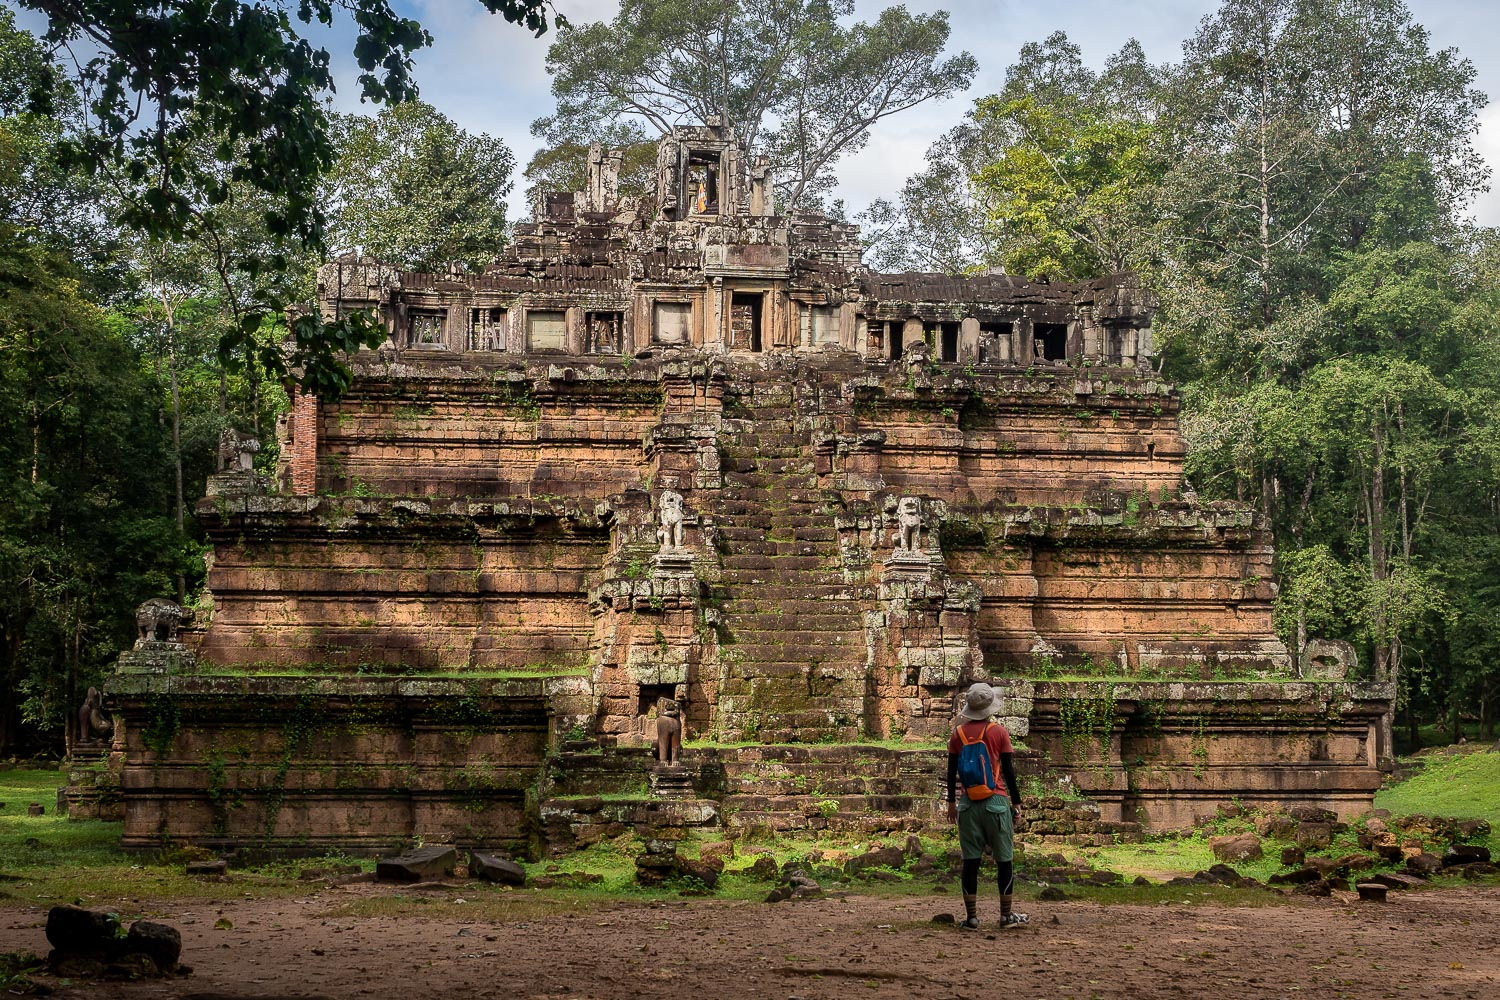 A man stands in front of the Phimeanakas temple, Angkor, Cambodia.